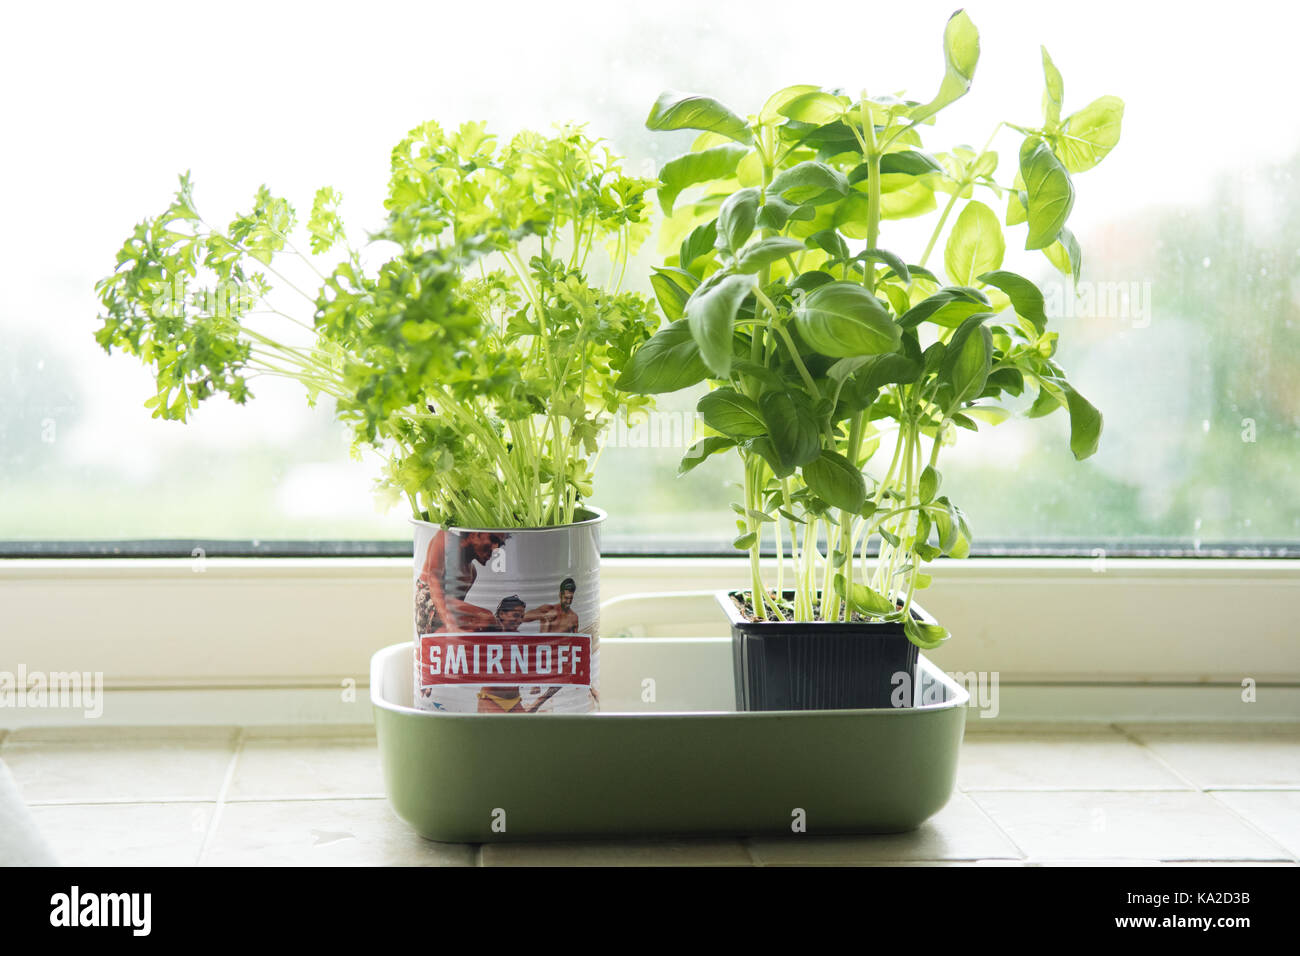 parsley and basil growing in pots on kitchen windowsill - Stock Image